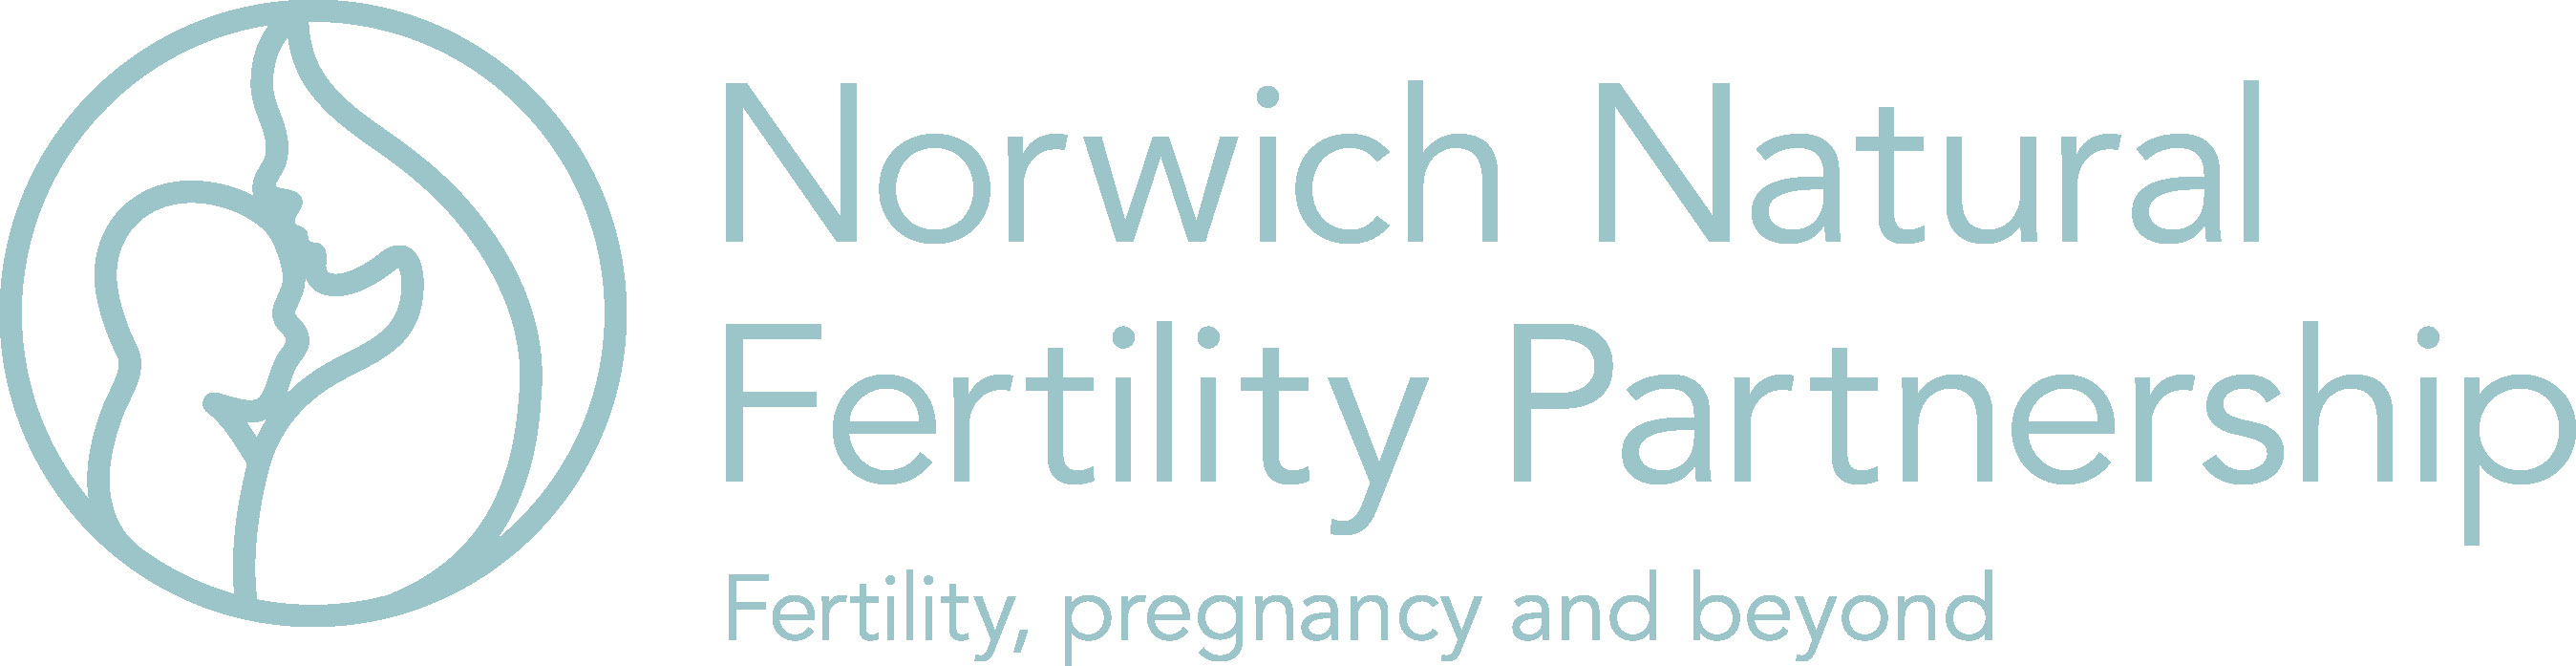 Norwich Natural Fertility Partnership